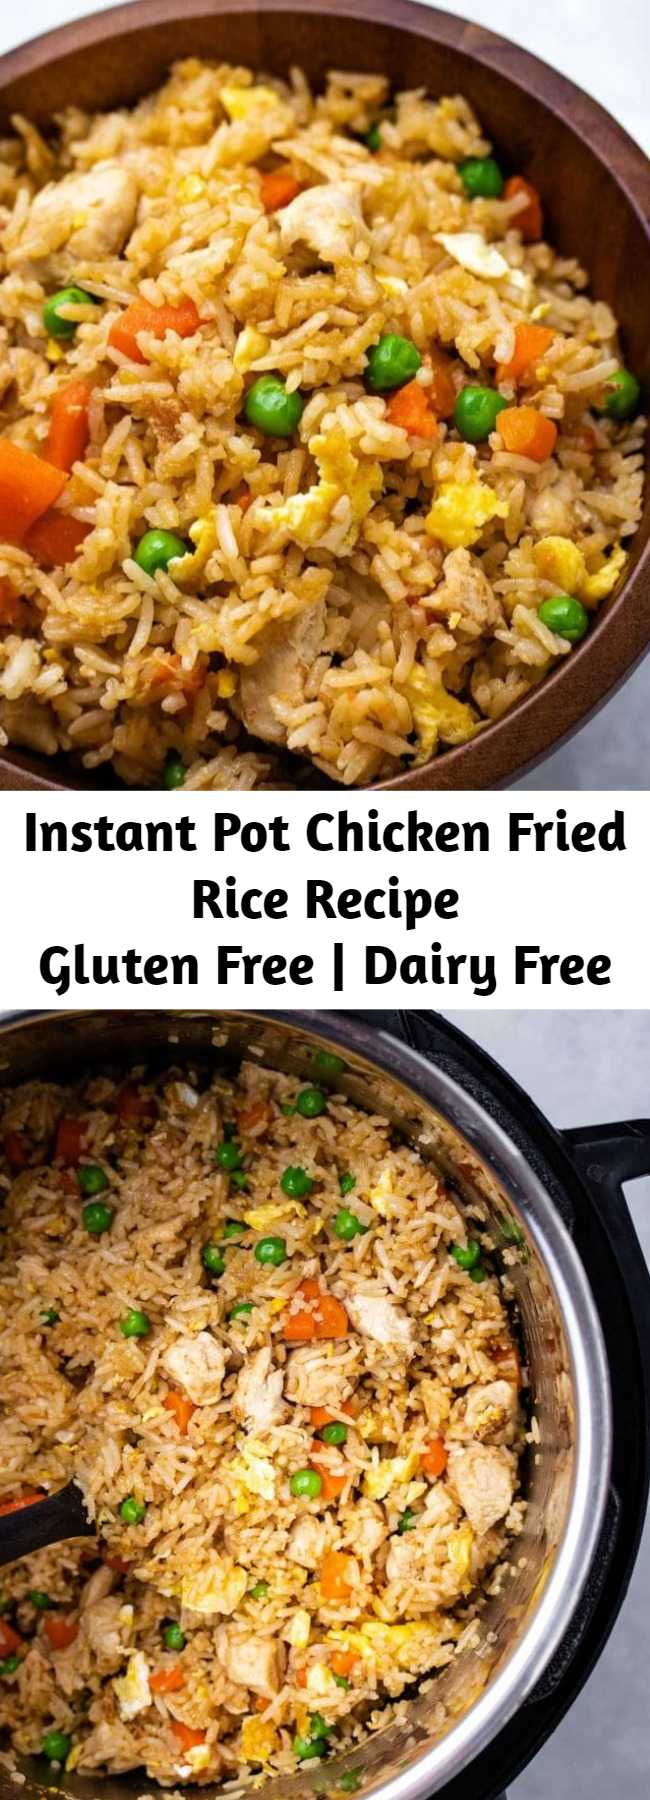 Instant Pot Chicken Fried Rice Recipe - Instant Pot Chicken Fried Rice is a fast and easy one-pot meal. With simple ingredients like rice, chicken, egg, carrots and peas, your family will love this savory recipe! Perfect for a weeknight dinner or meal prep lunch!